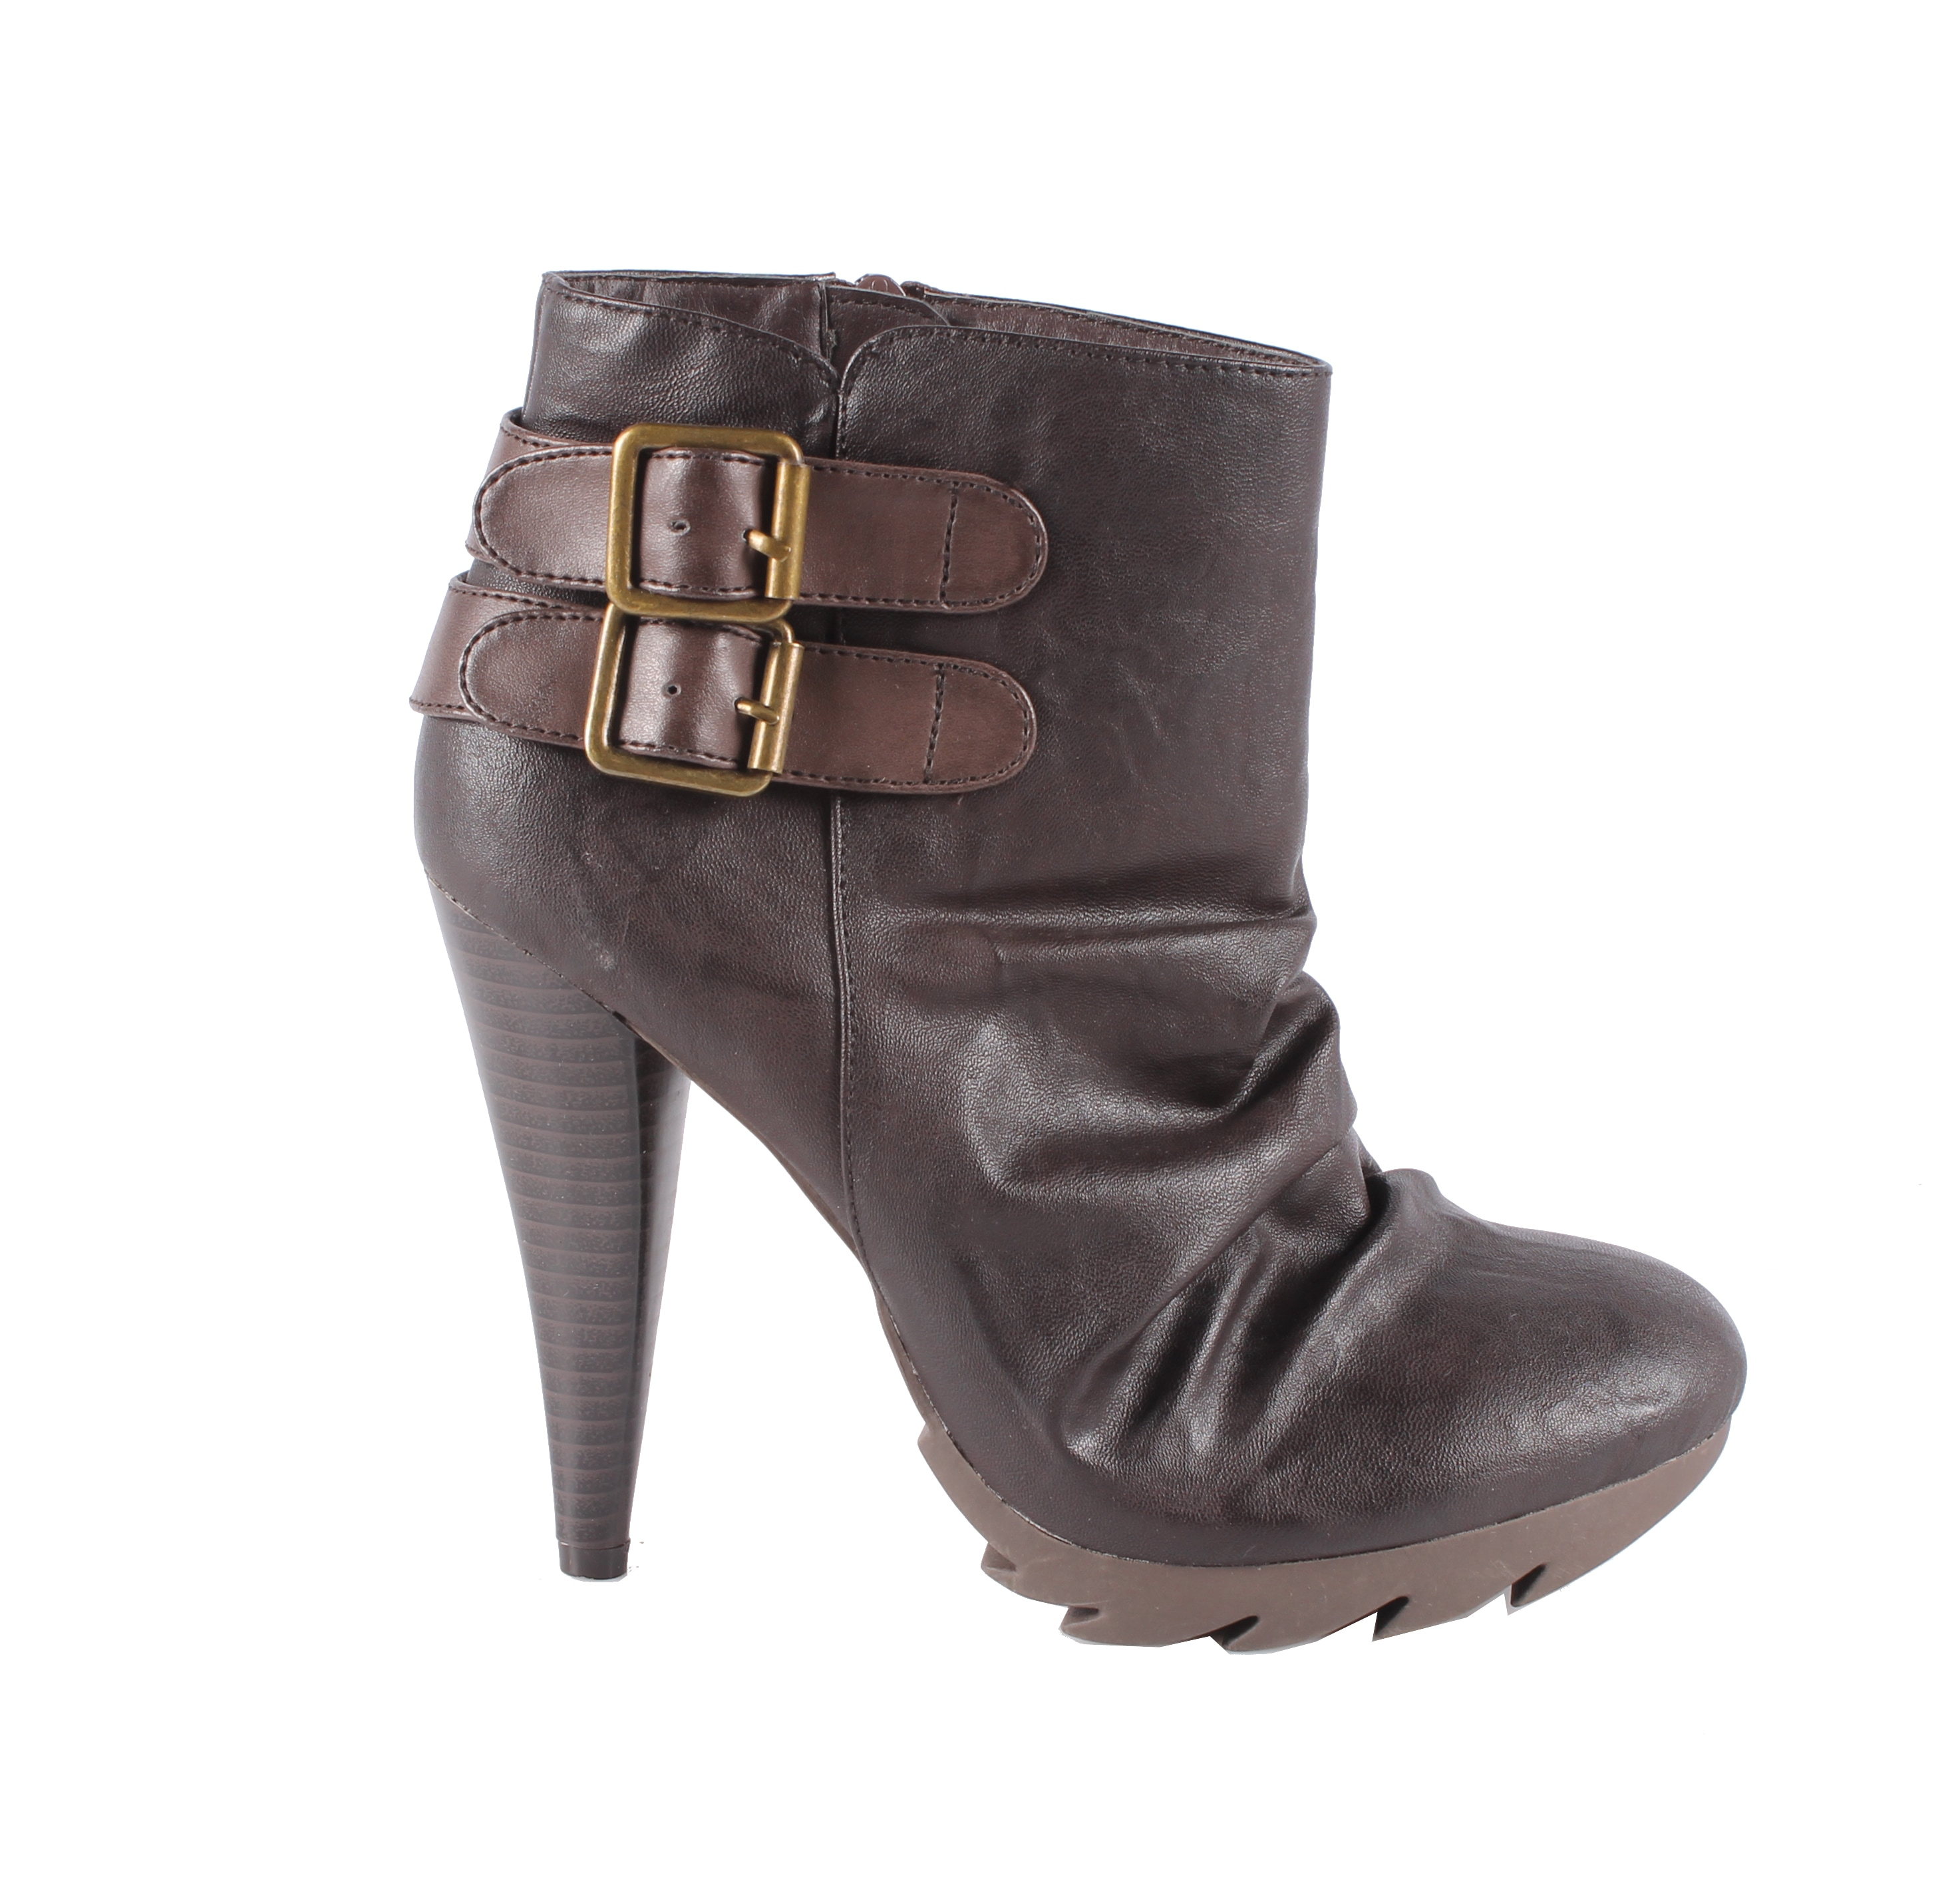 Jacobies by Beston Women's 'Tina-4' Brown Stiletto Bootie